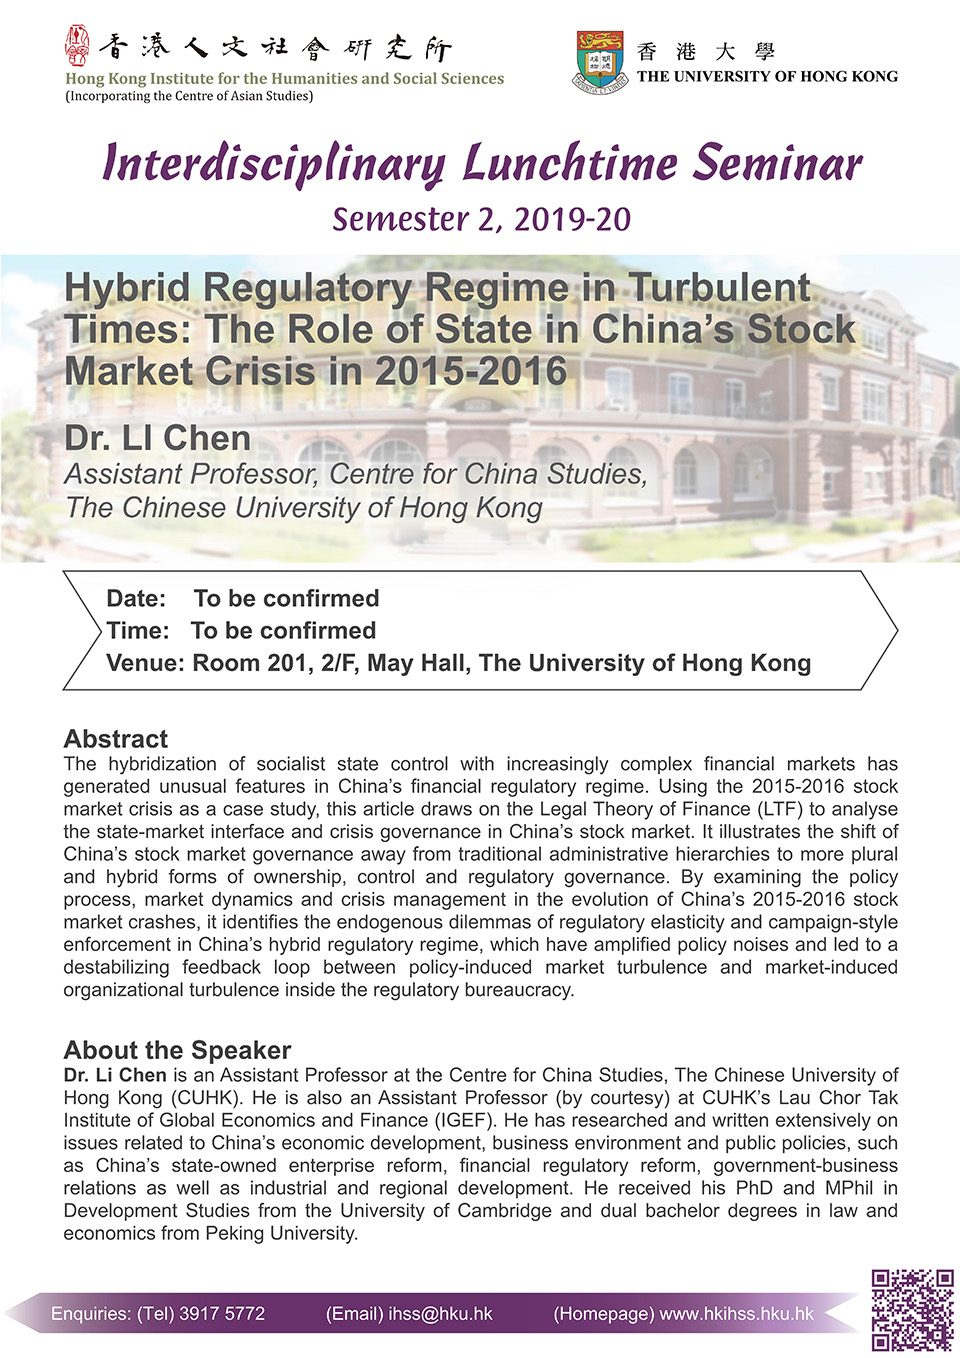 """Interdisciplinary Lunchtime Seminar on """"Hybrid Regulatory Regime in Turbulent Times: The Role of State in China's Stock Market Crisis in 2015 – 2016"""" by Dr. Li Chen"""